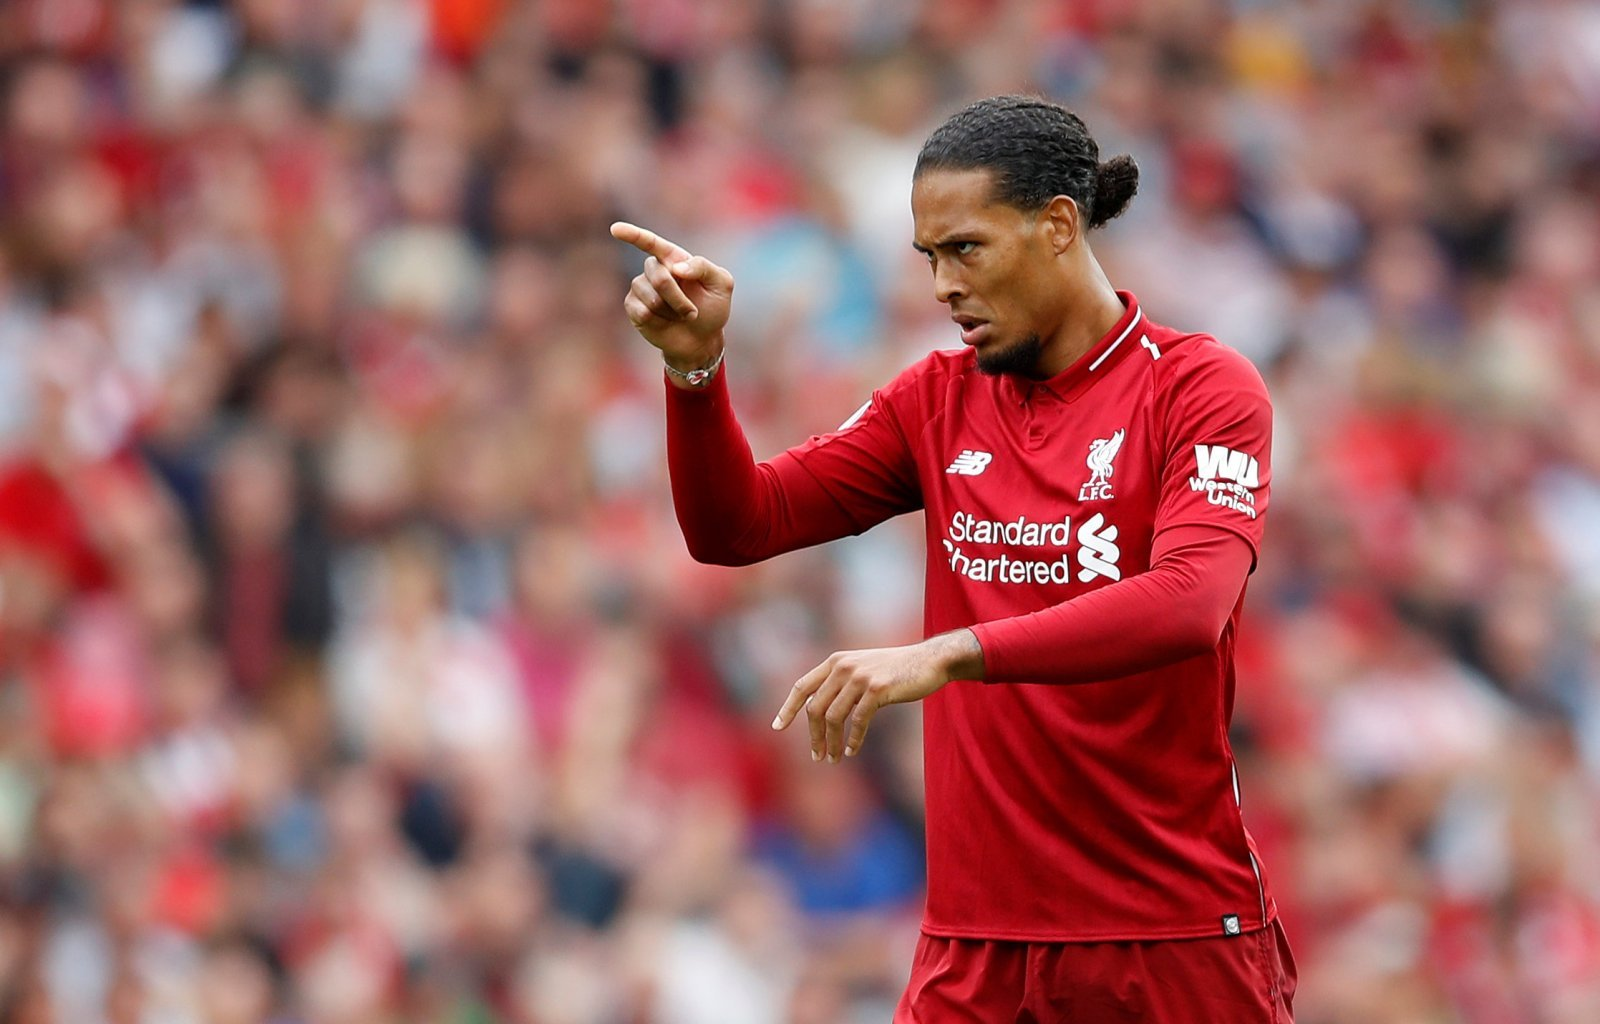 Virgil van Dijk showed against Crystal Palace why Liverpool paid £75m to sign him